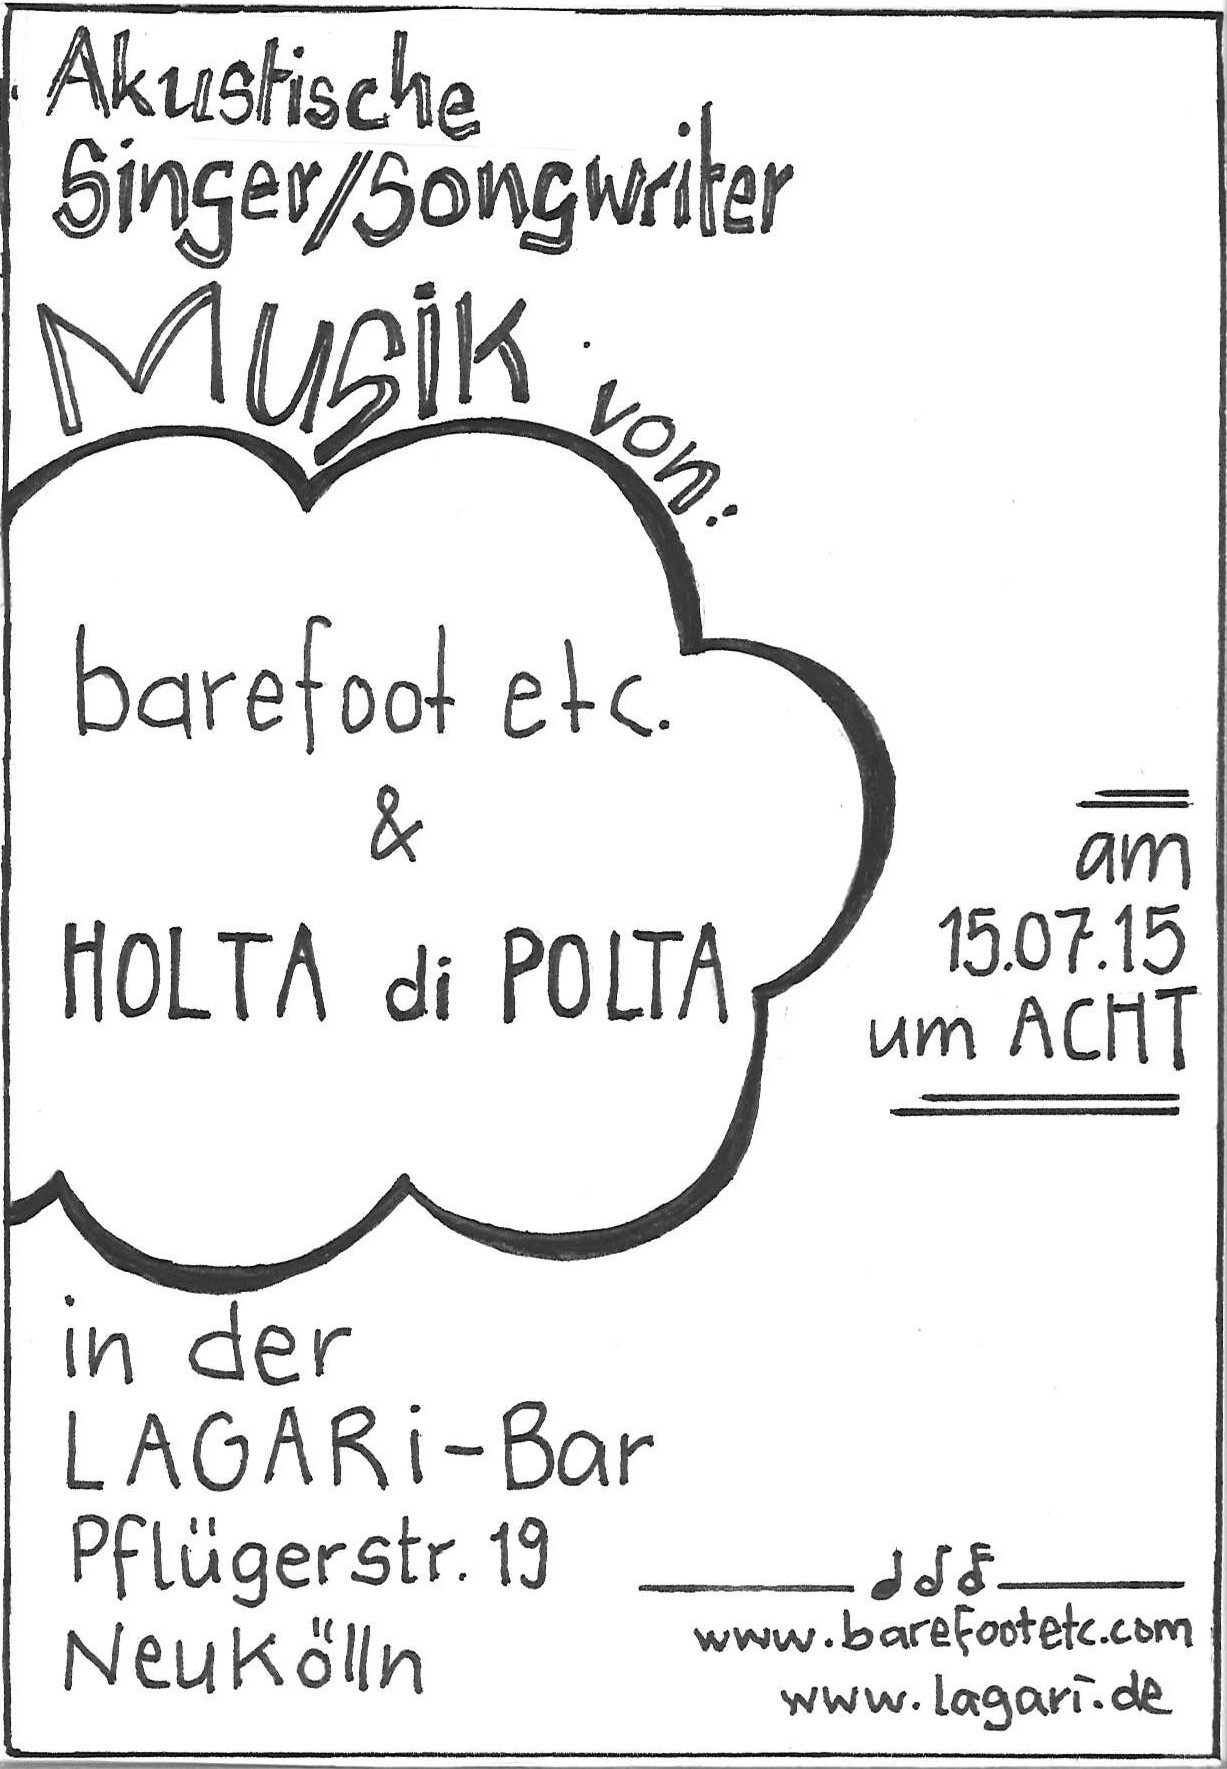 gig at Lagari, Neukölln, Pflügerstr. 19, July 15, 2015 at 8 pm